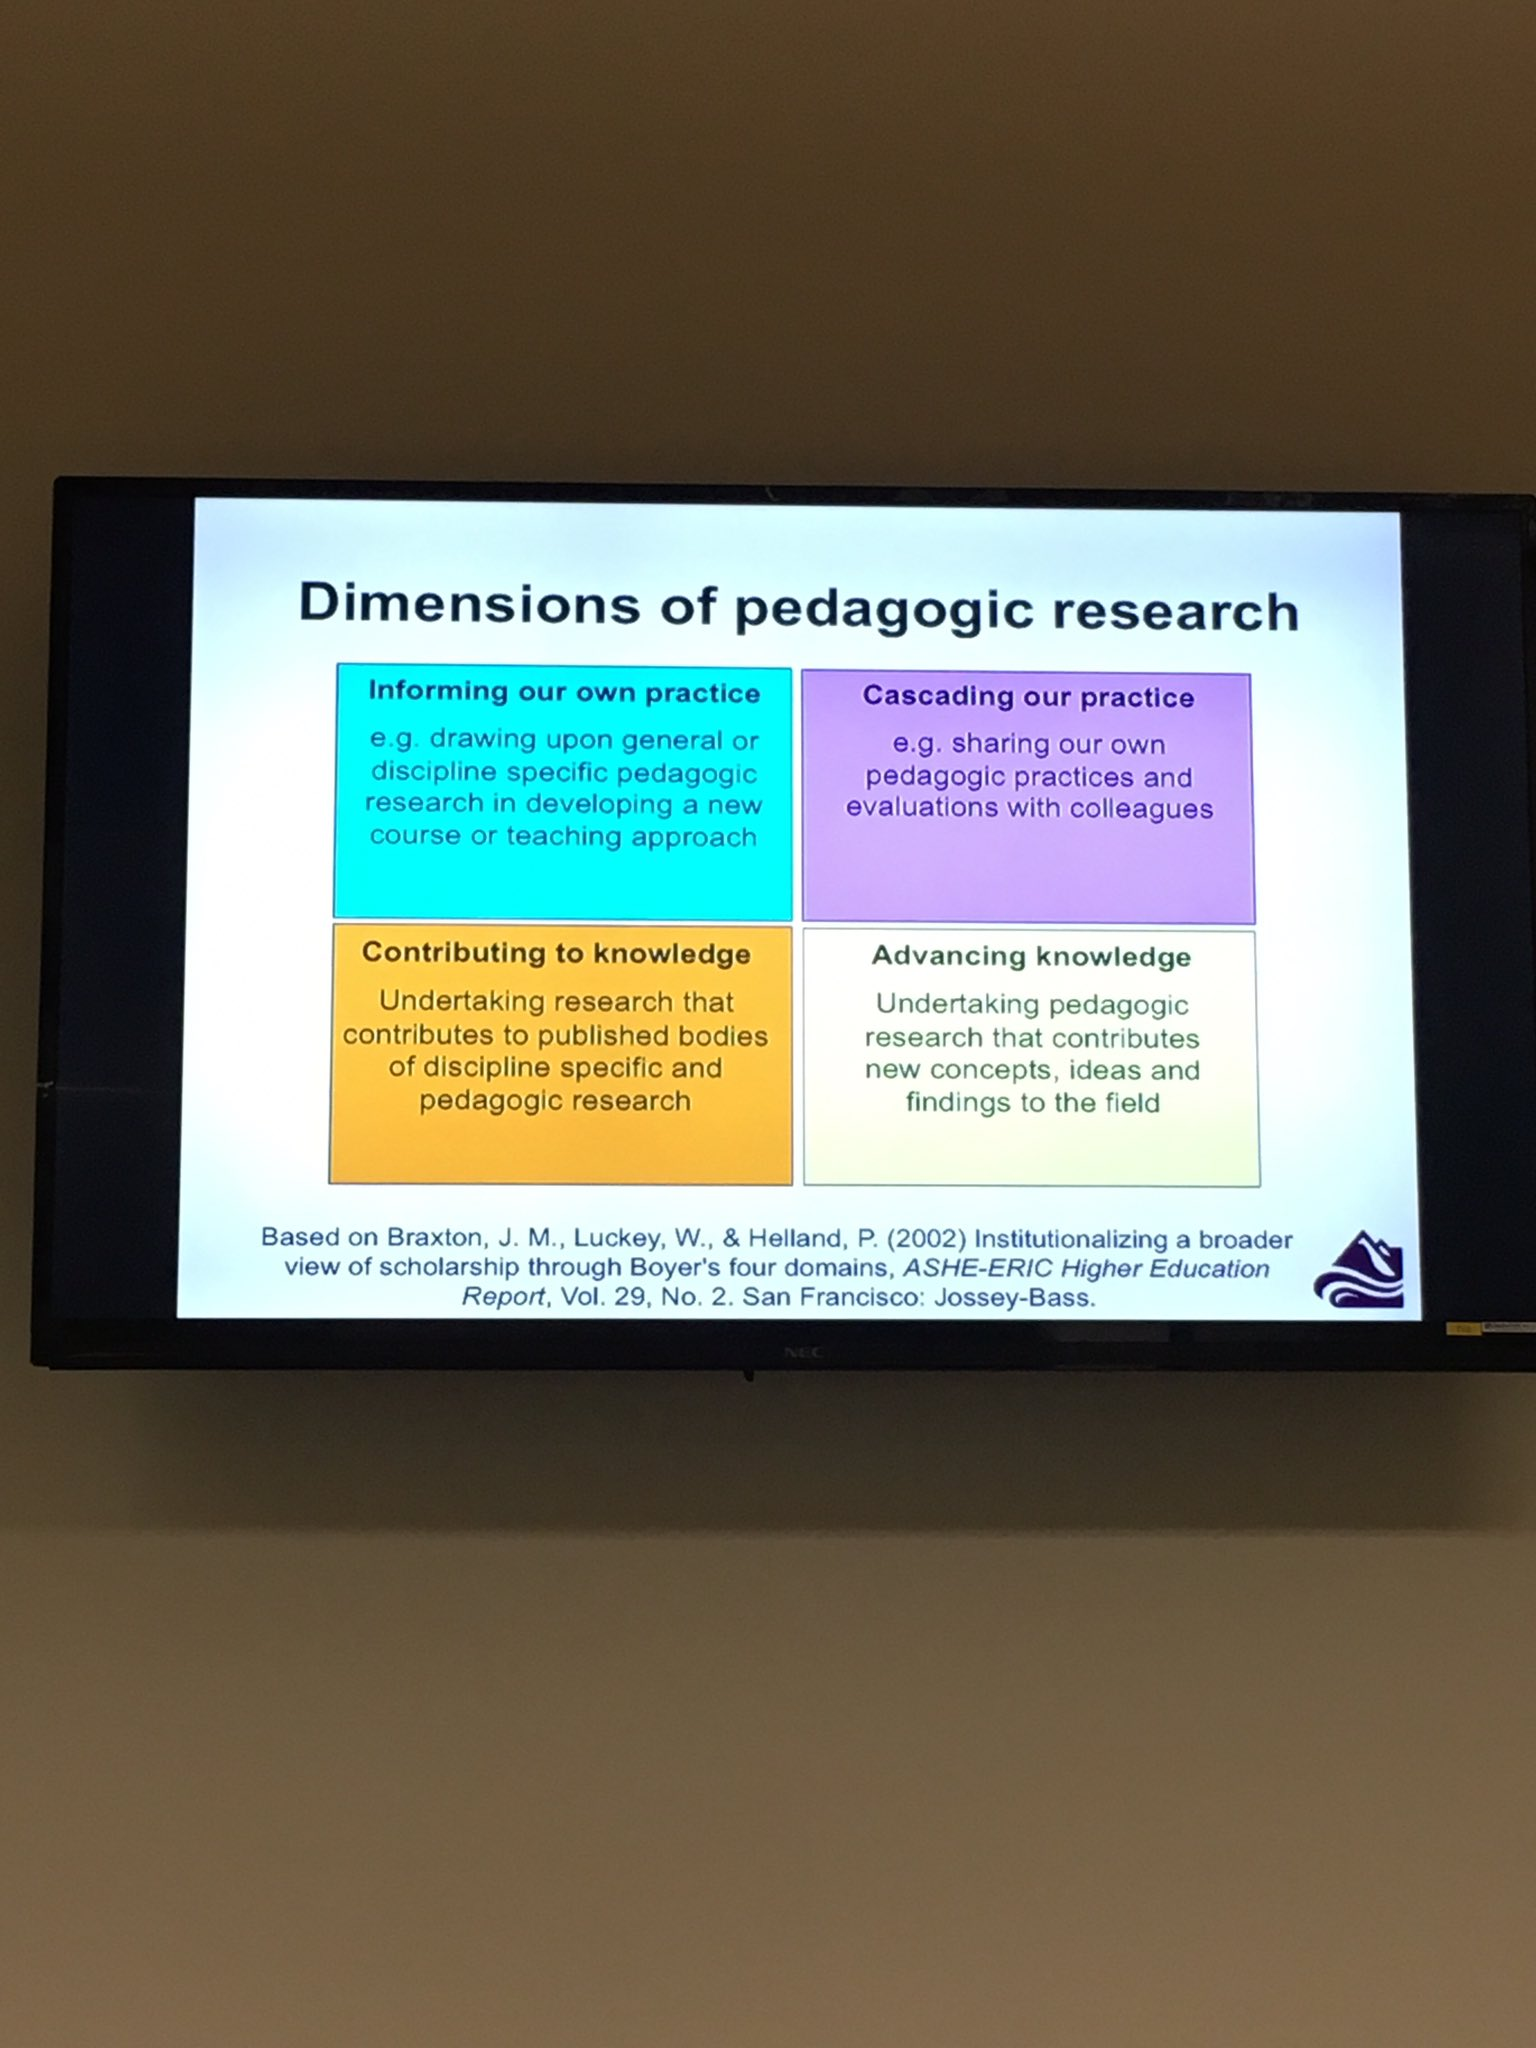 UHI draw upon Boyer's work to inform their approach to pedagogic research #elesig https://t.co/GgDcwcMMpm